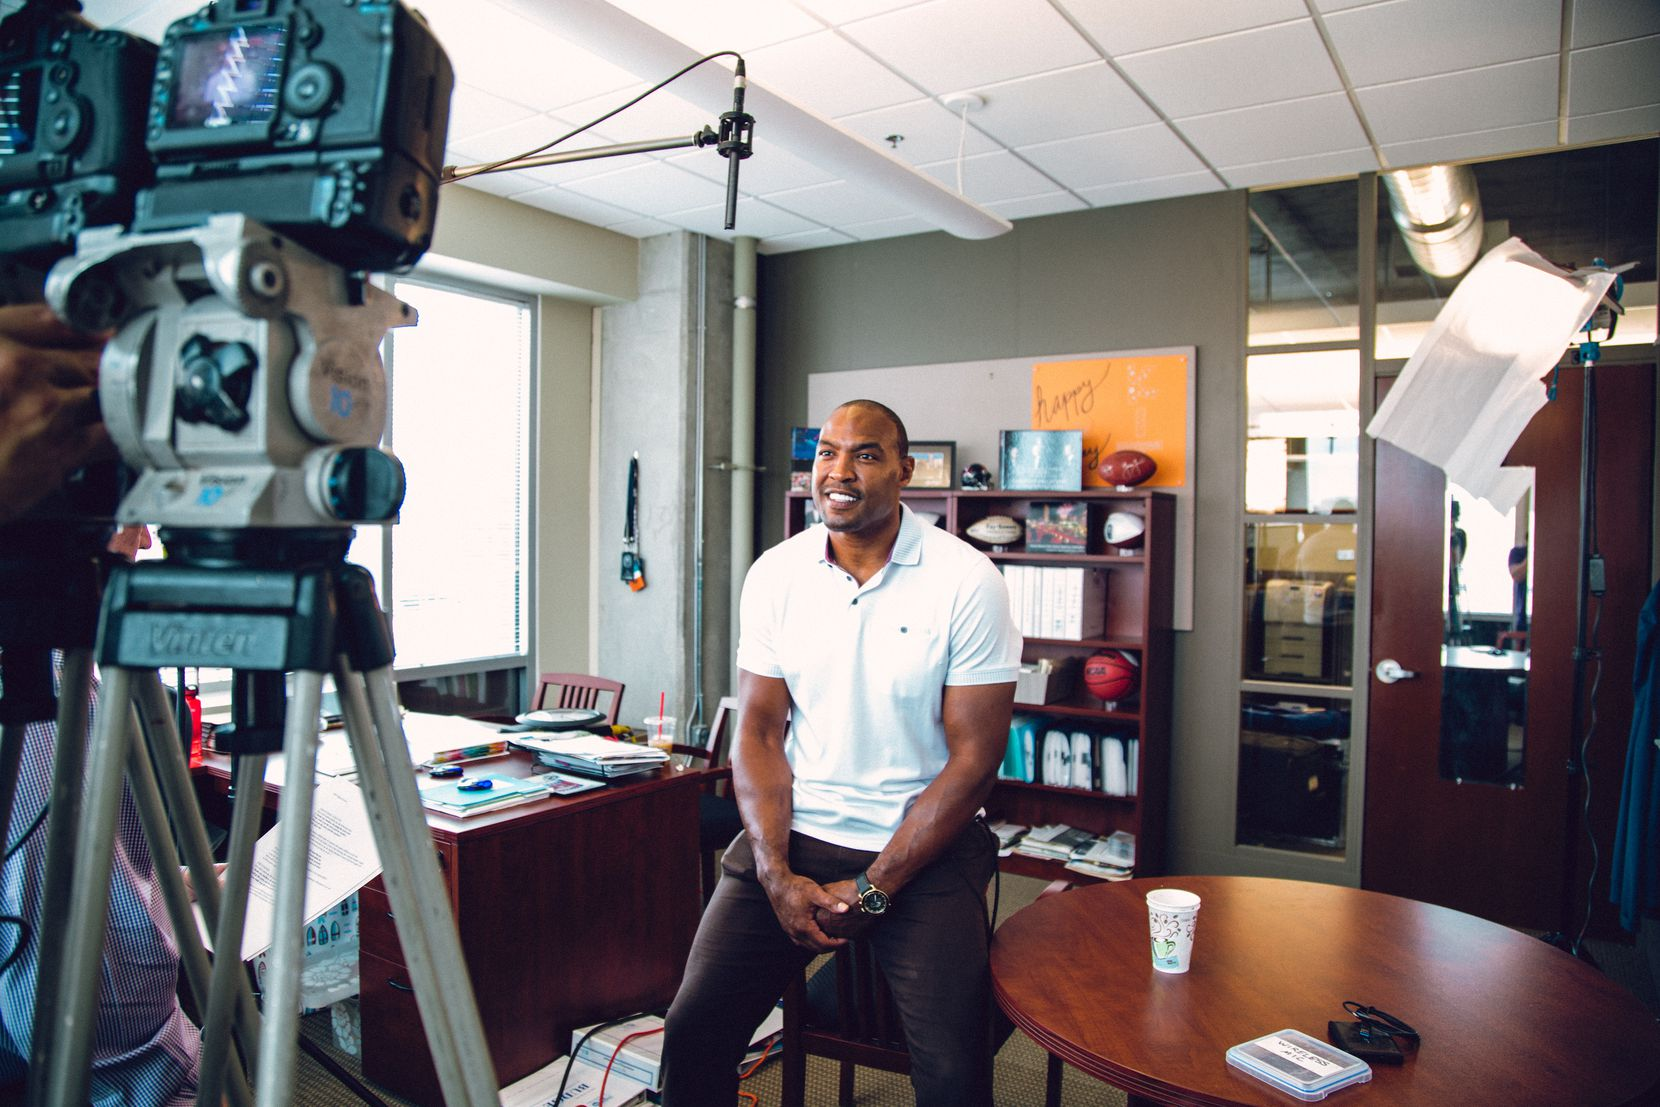 """Former Dallas Cowboys safety great Darren Woodson says this is the right time for him to leave his job at ESPN. """"It was a grind,"""" he said. """"It wore me down through the years and was very time-consuming."""